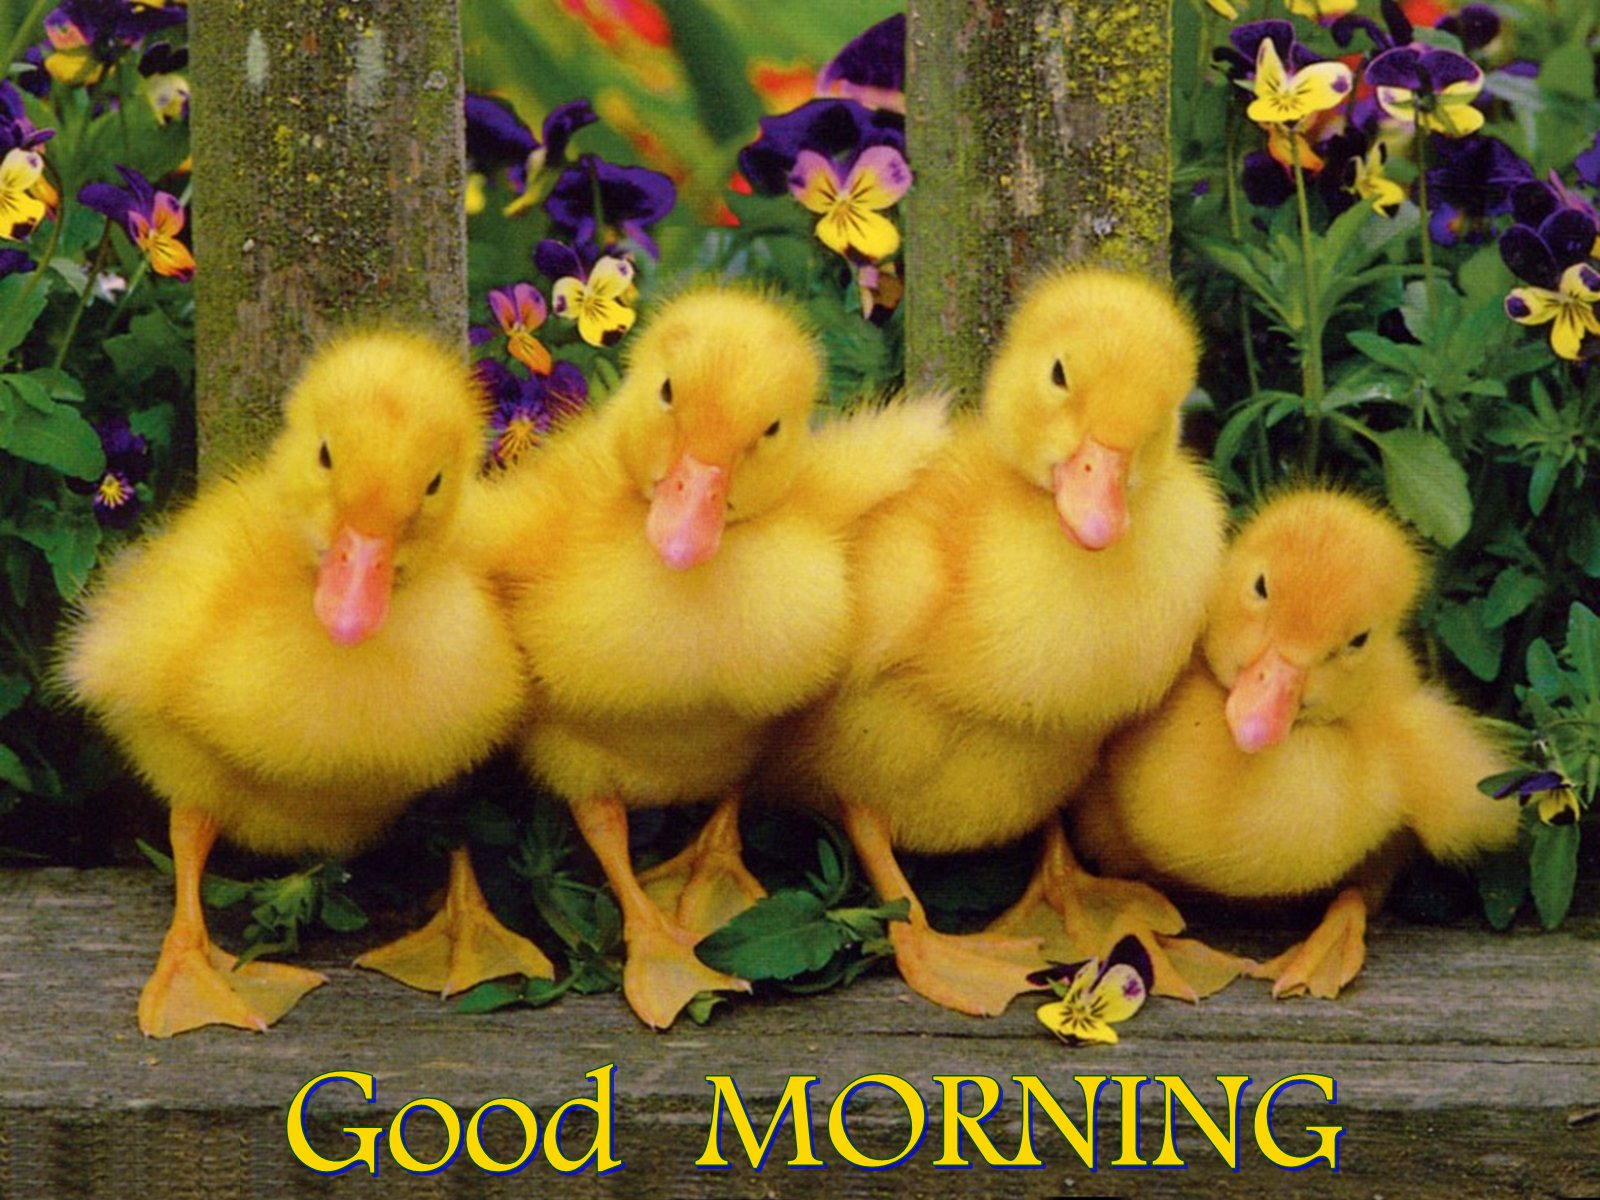 Image result for good morning duck images